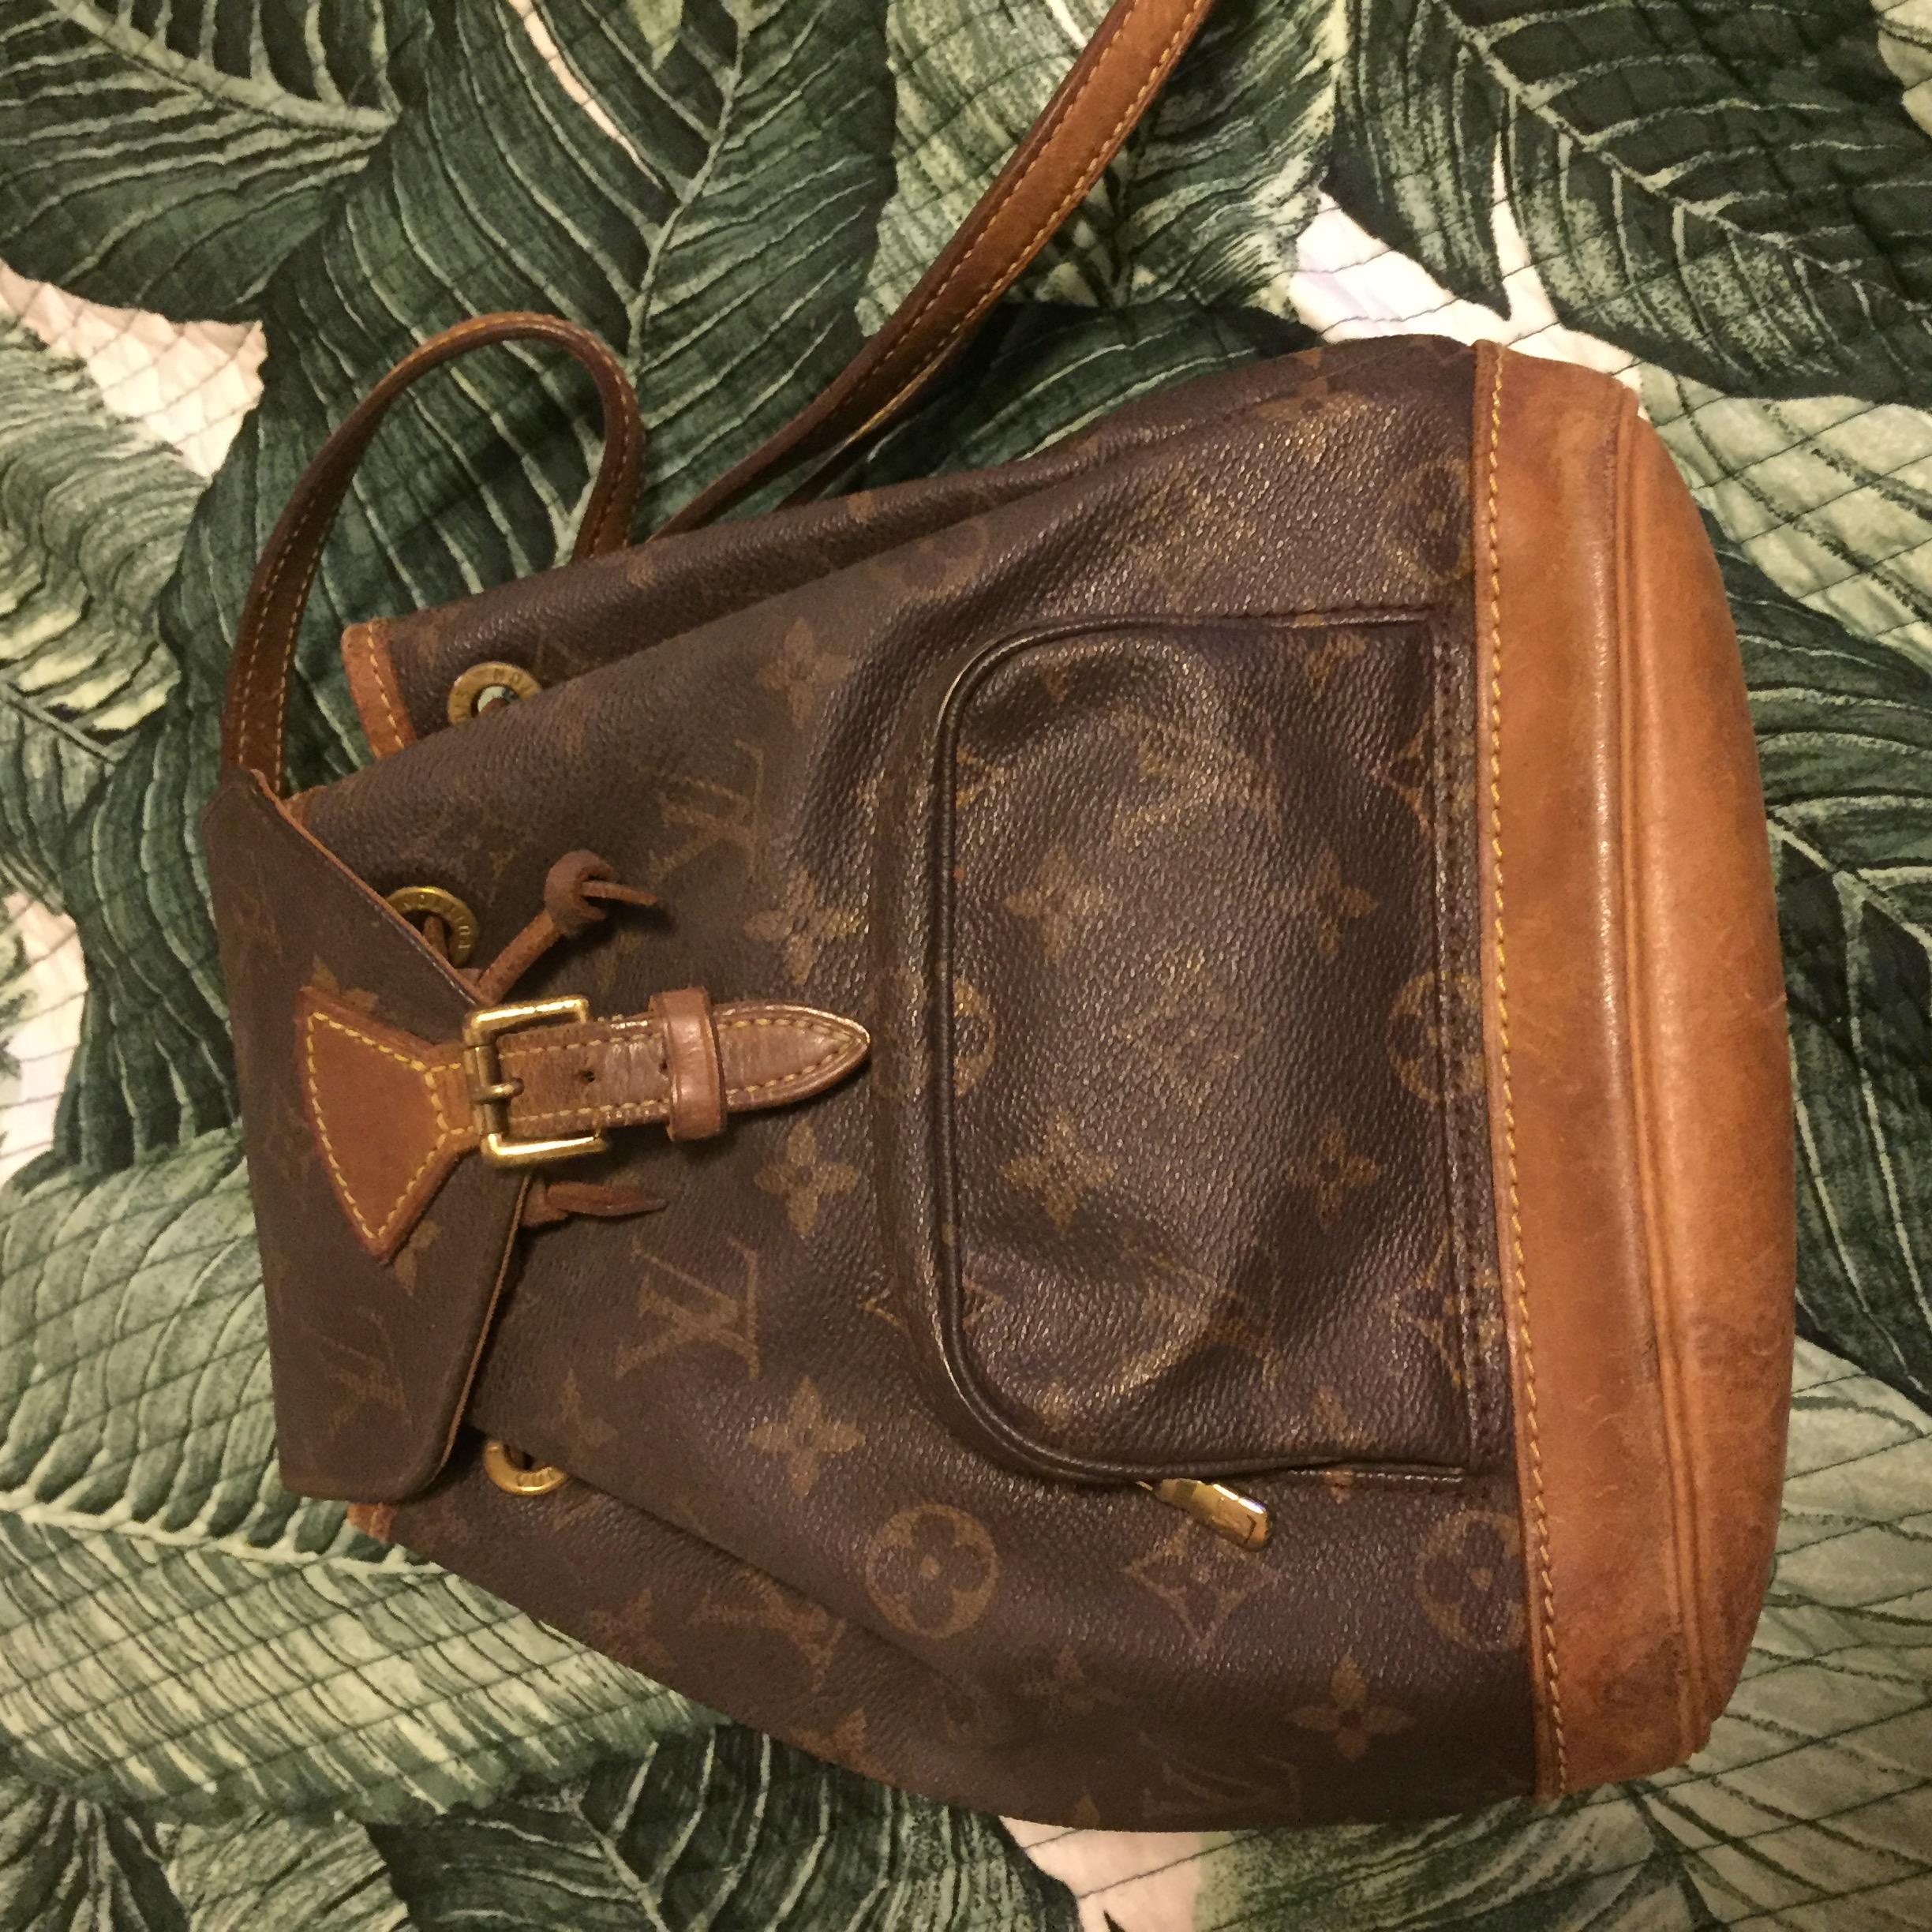 3f6fbc609c0f ... to clean my Louis Vuitton vintage backpack  I just purchased it on eBay  and it looks lifeless. Also what would you use to get rid of musty smell